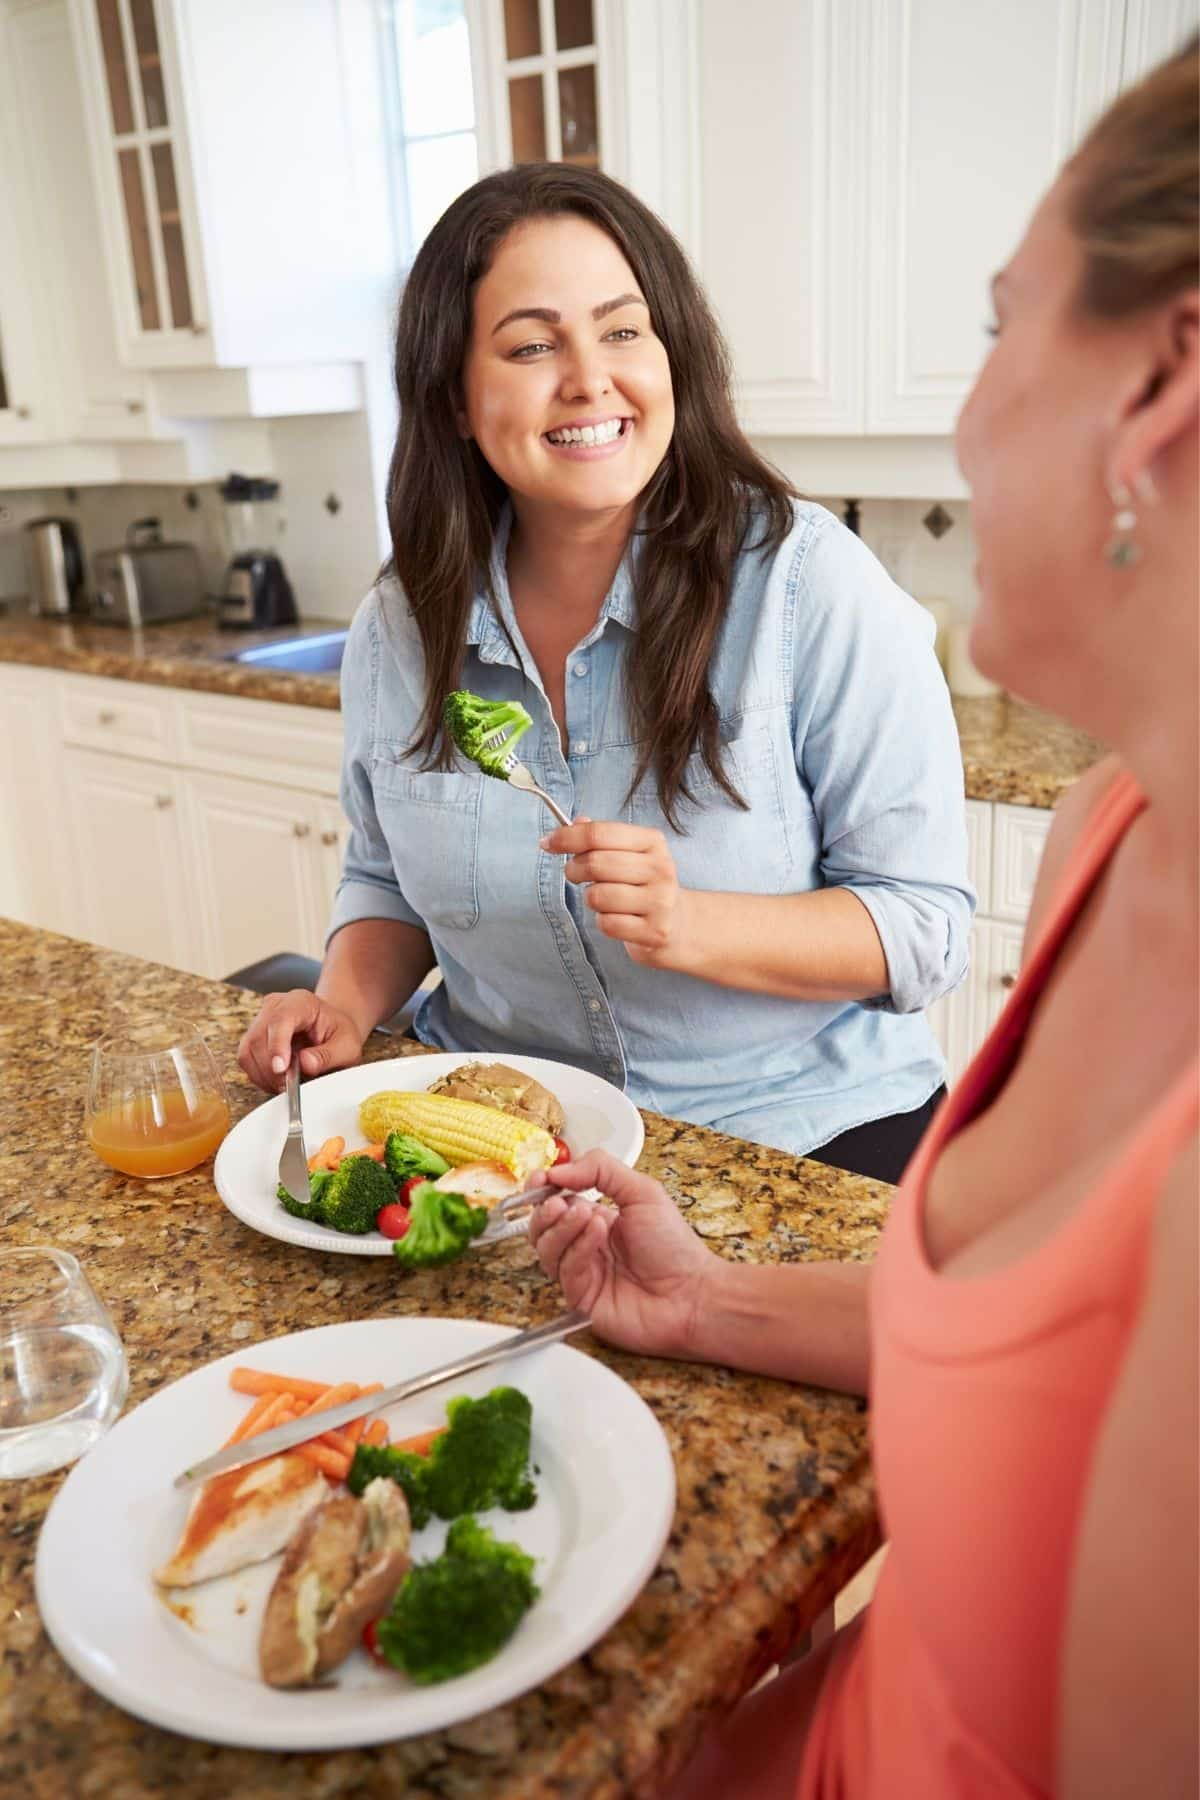 two women eating together in a kitchen